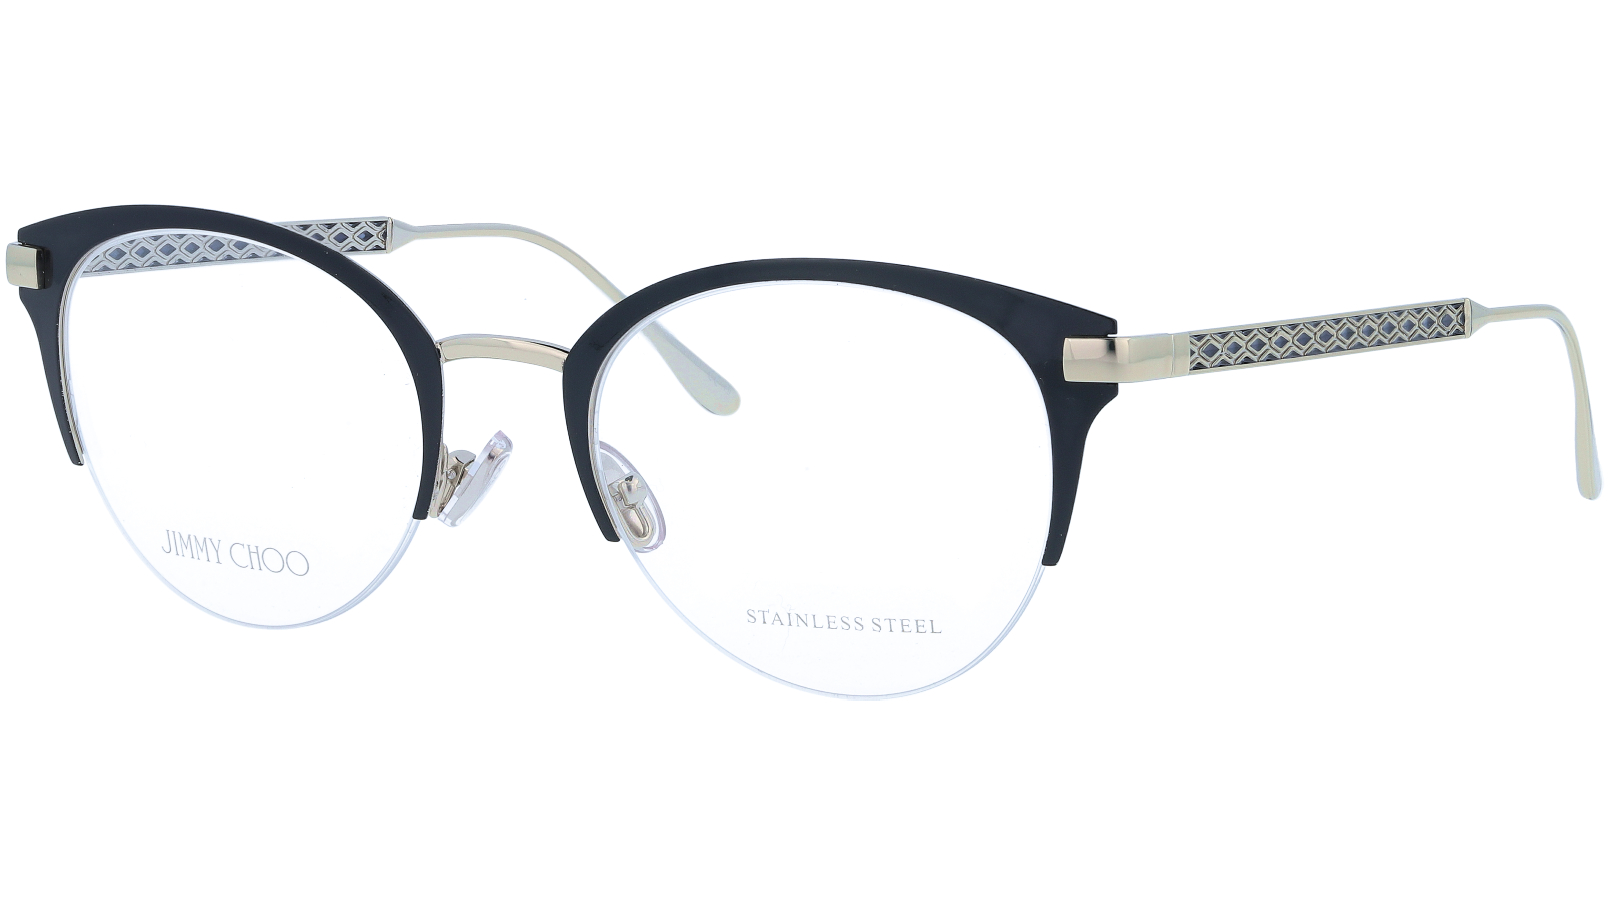 JIMMY CHOO JC215 807 50 BLACK Glasses